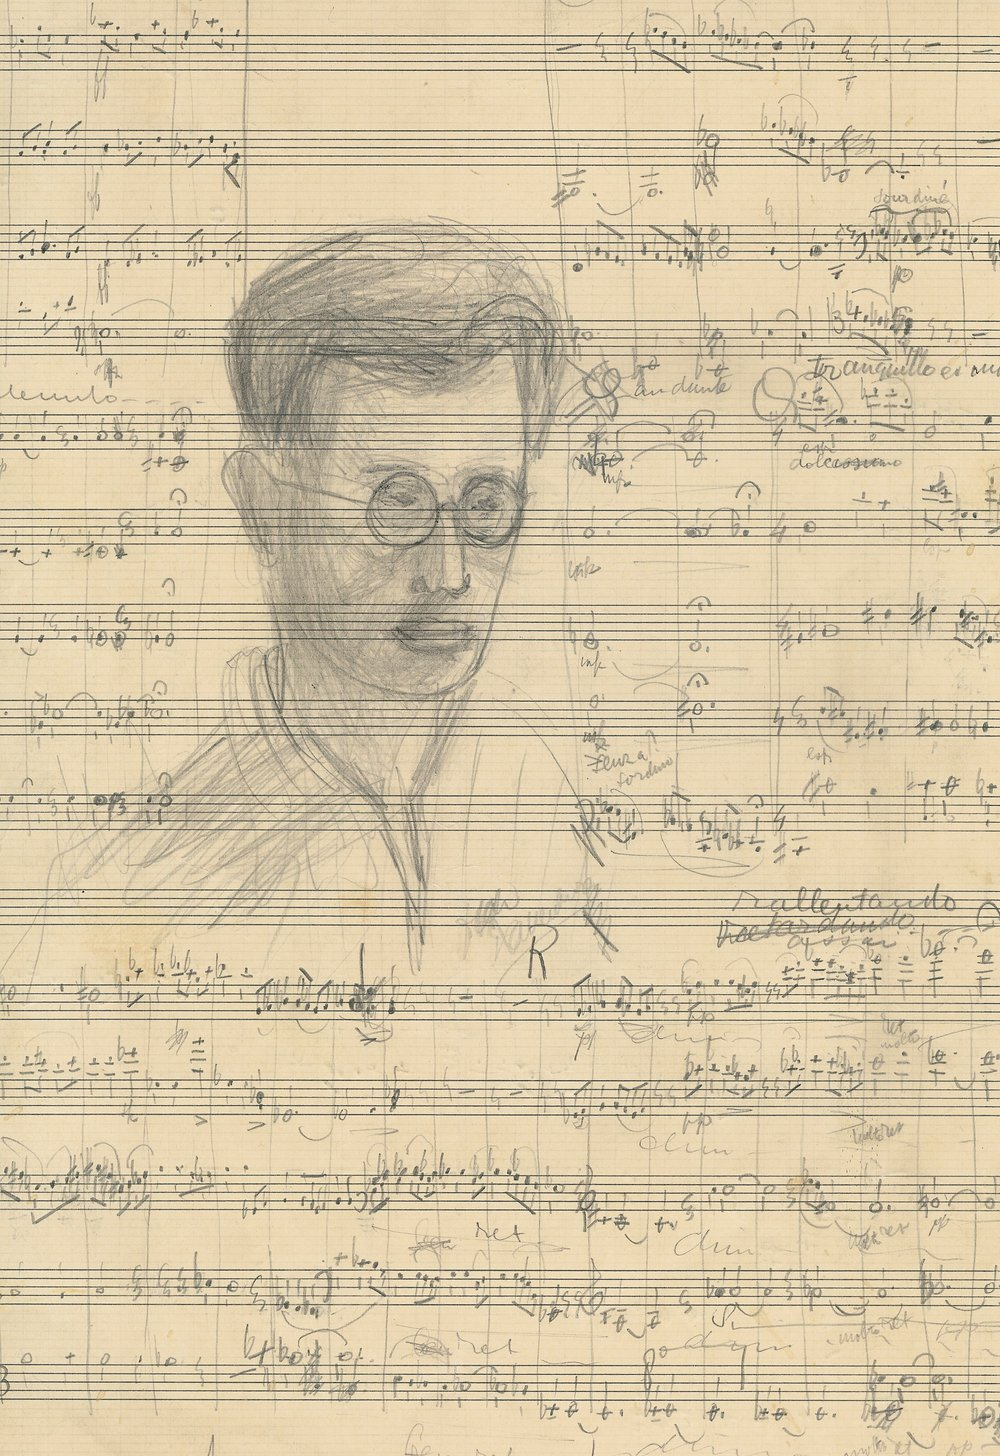 Self portrait by a young Dutch Jewish composer named Dick Kattenburg. While in hiding, he received clandestine composition lessons via post from another Jewish composer. Dick would only hear one of his pieces performed in his lifetime.